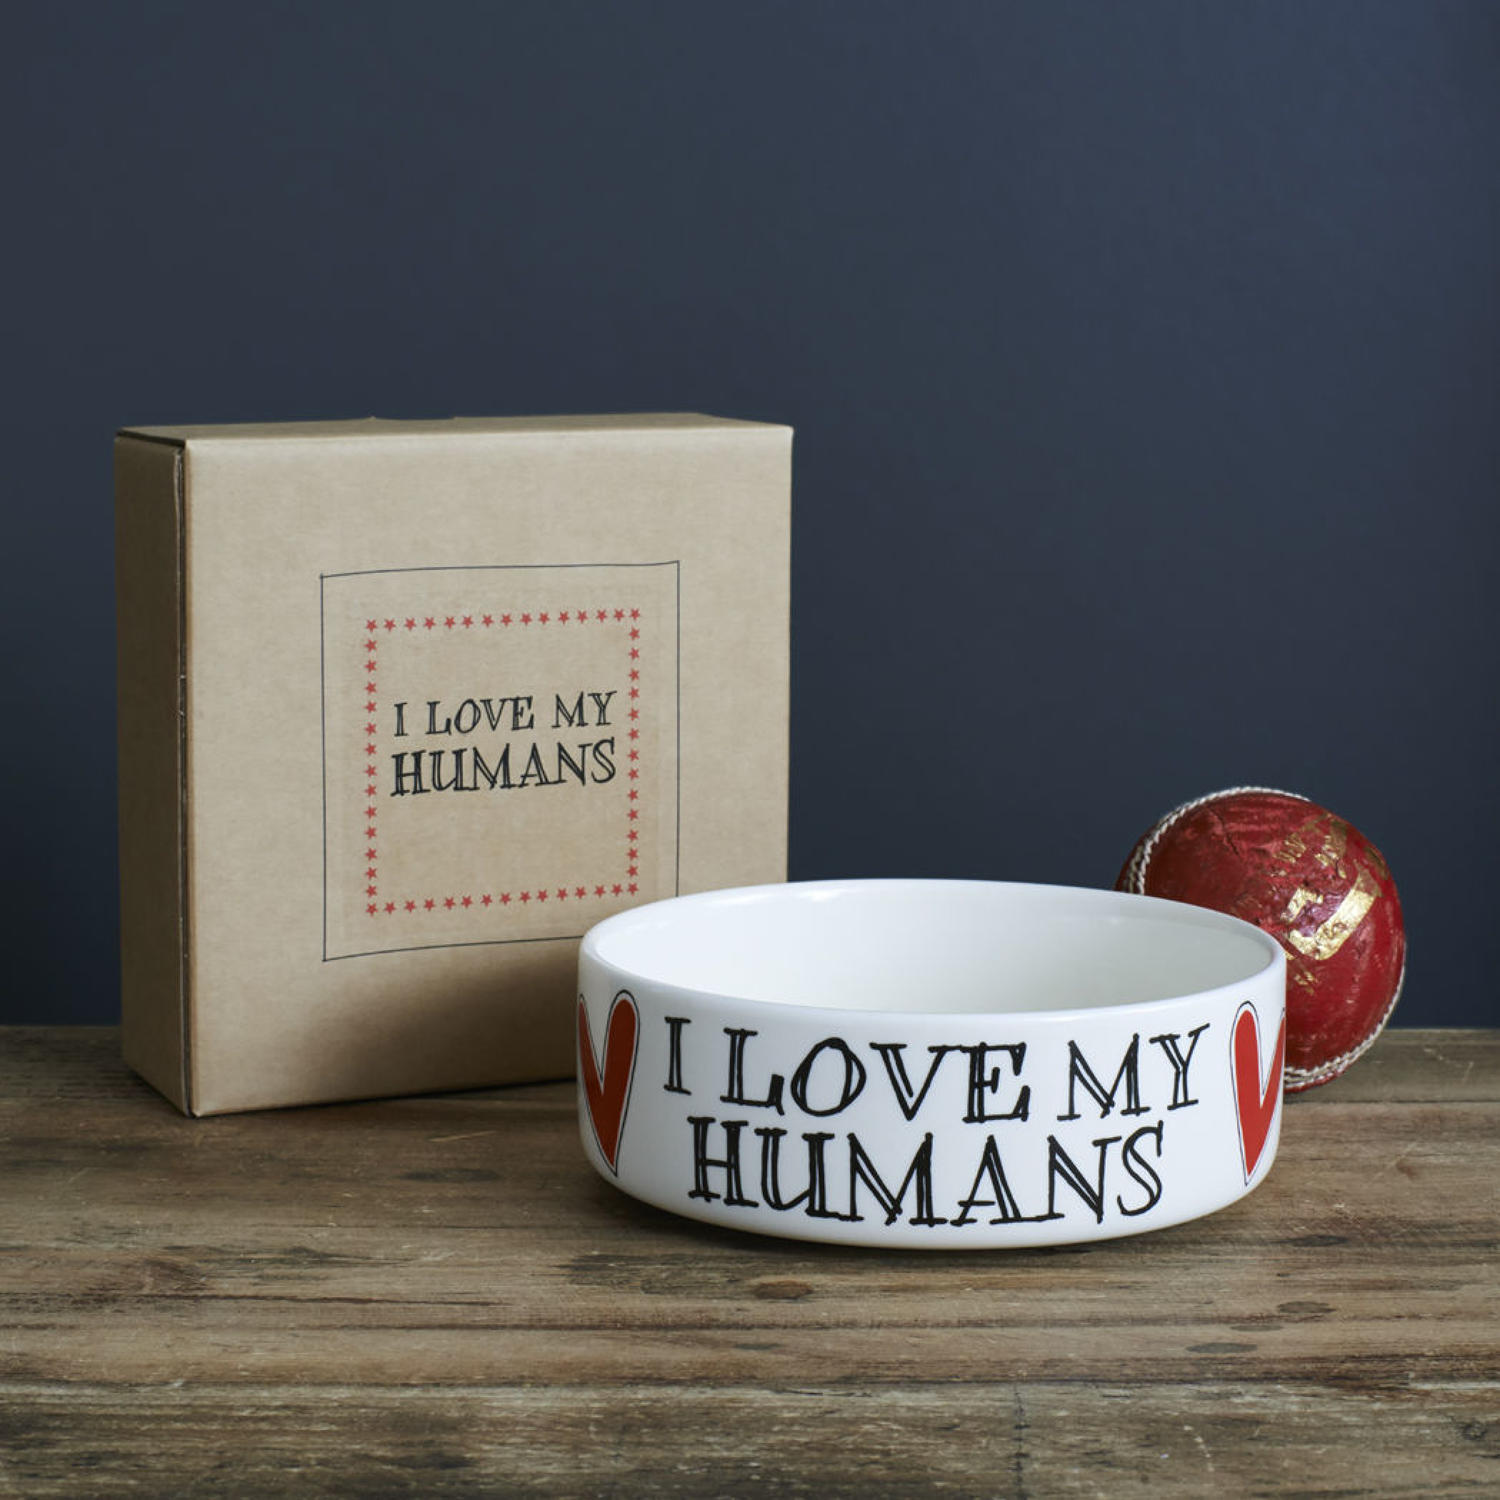 Small ceramic dog or cat bowl featuring - I Love My Humans